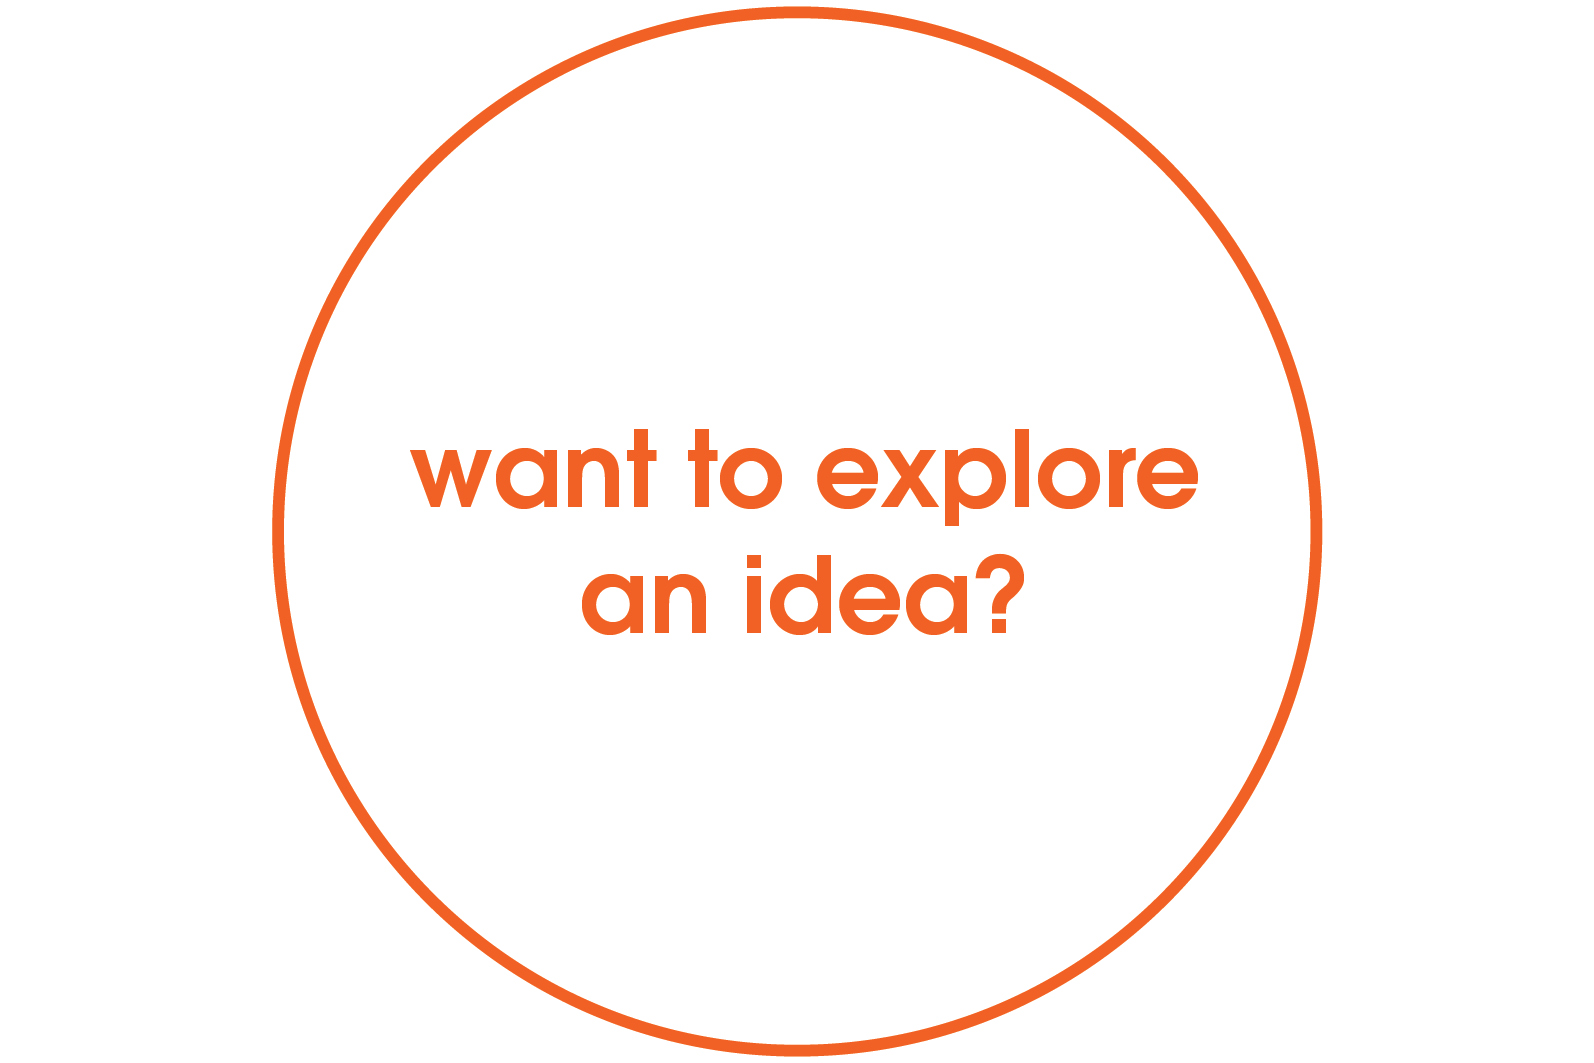 want to explore an idea